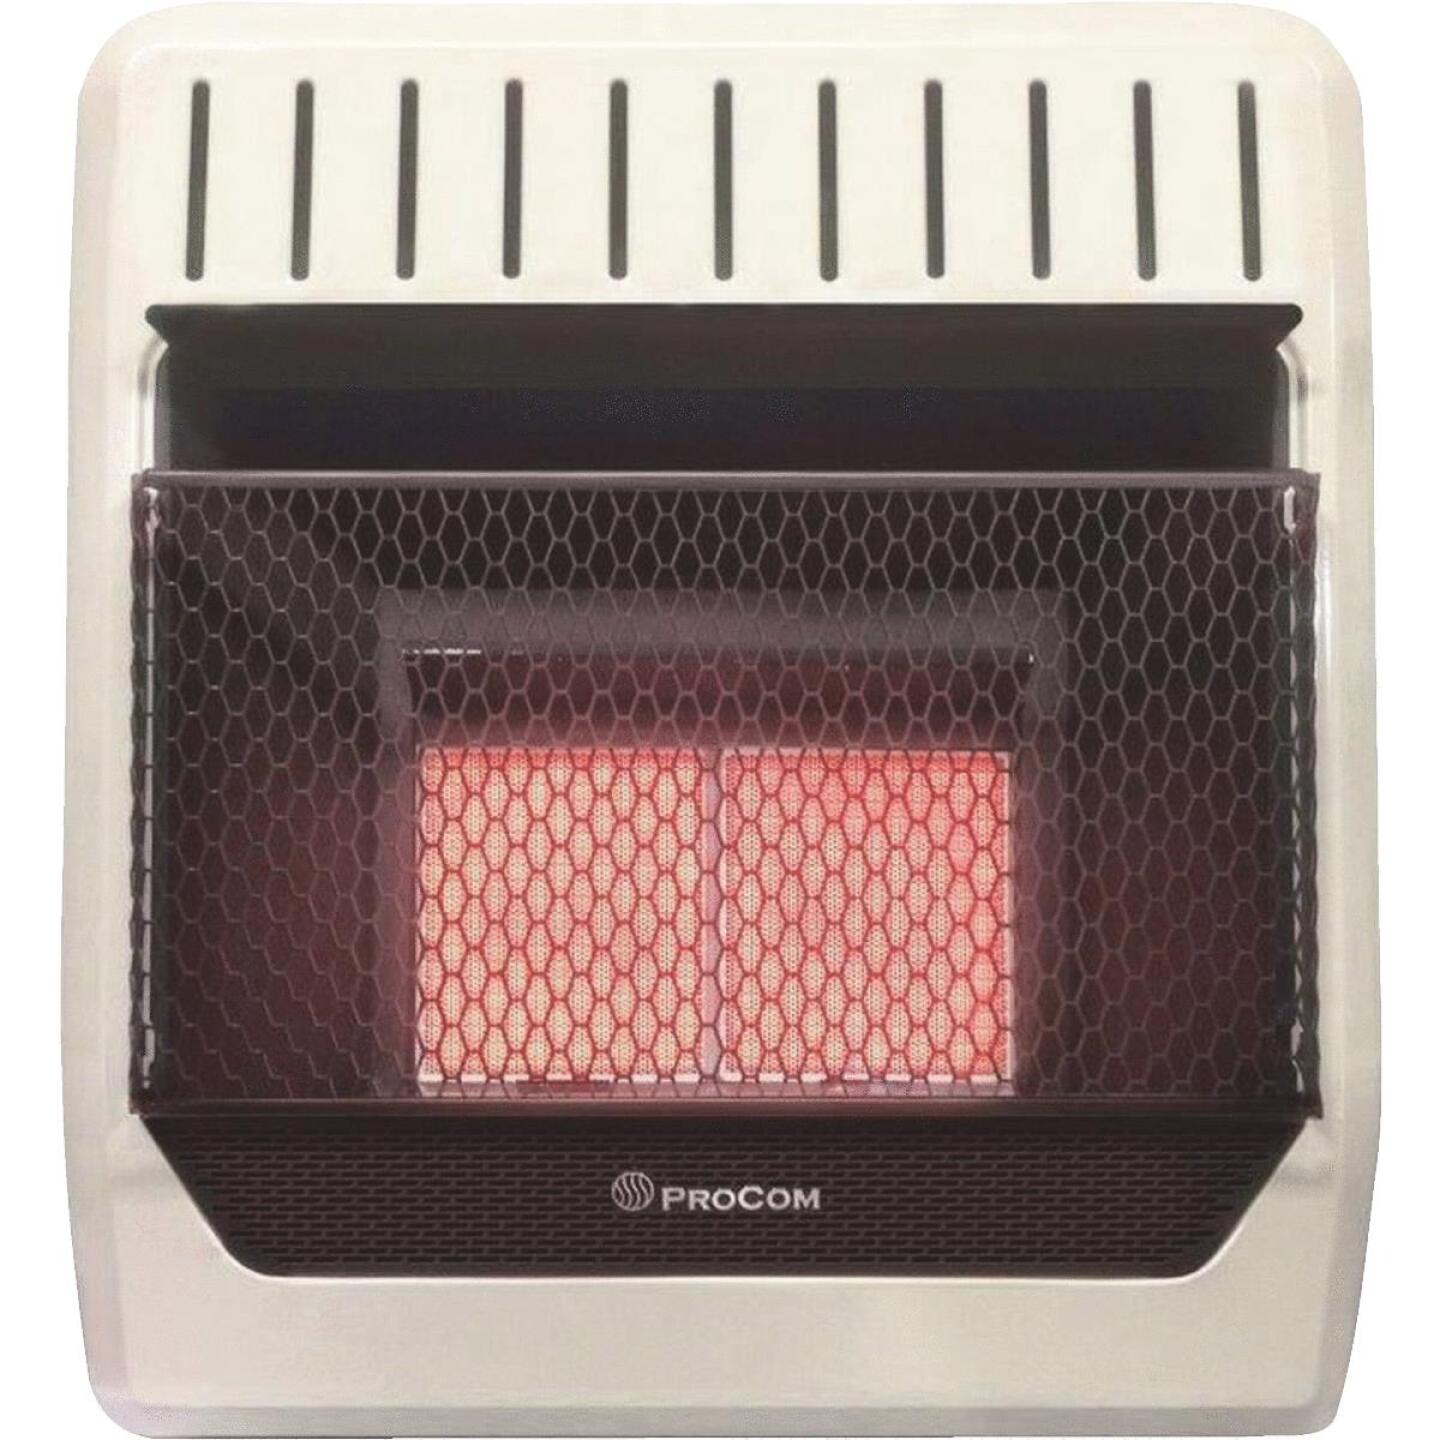 ProCom 18,000 / 20,000 BTU Natural Gas or Propane Gas Vent-Free Infrared Plaque Gas Wall Heater Image 1